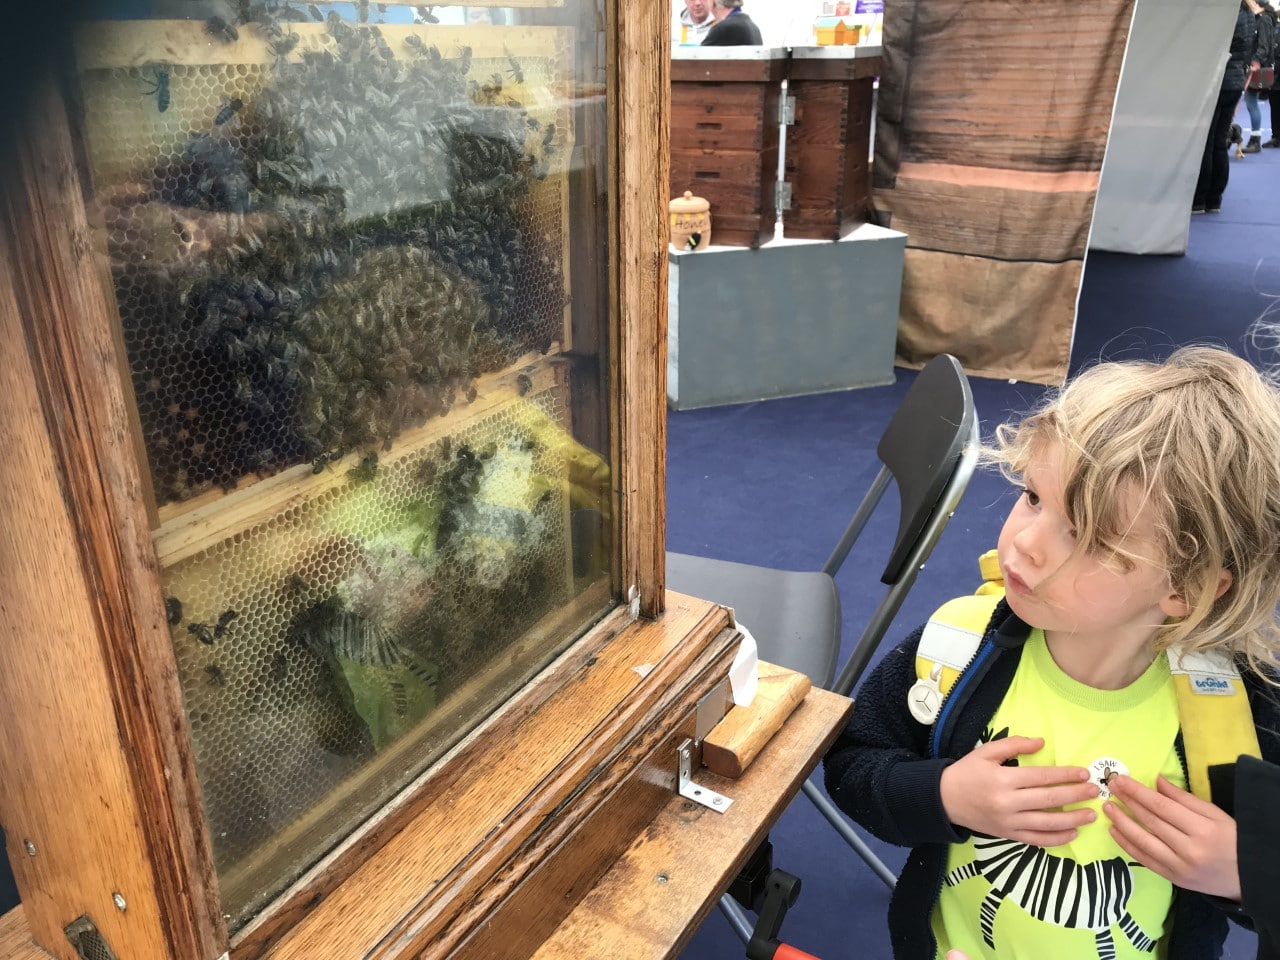 looking at bees in a glass hive